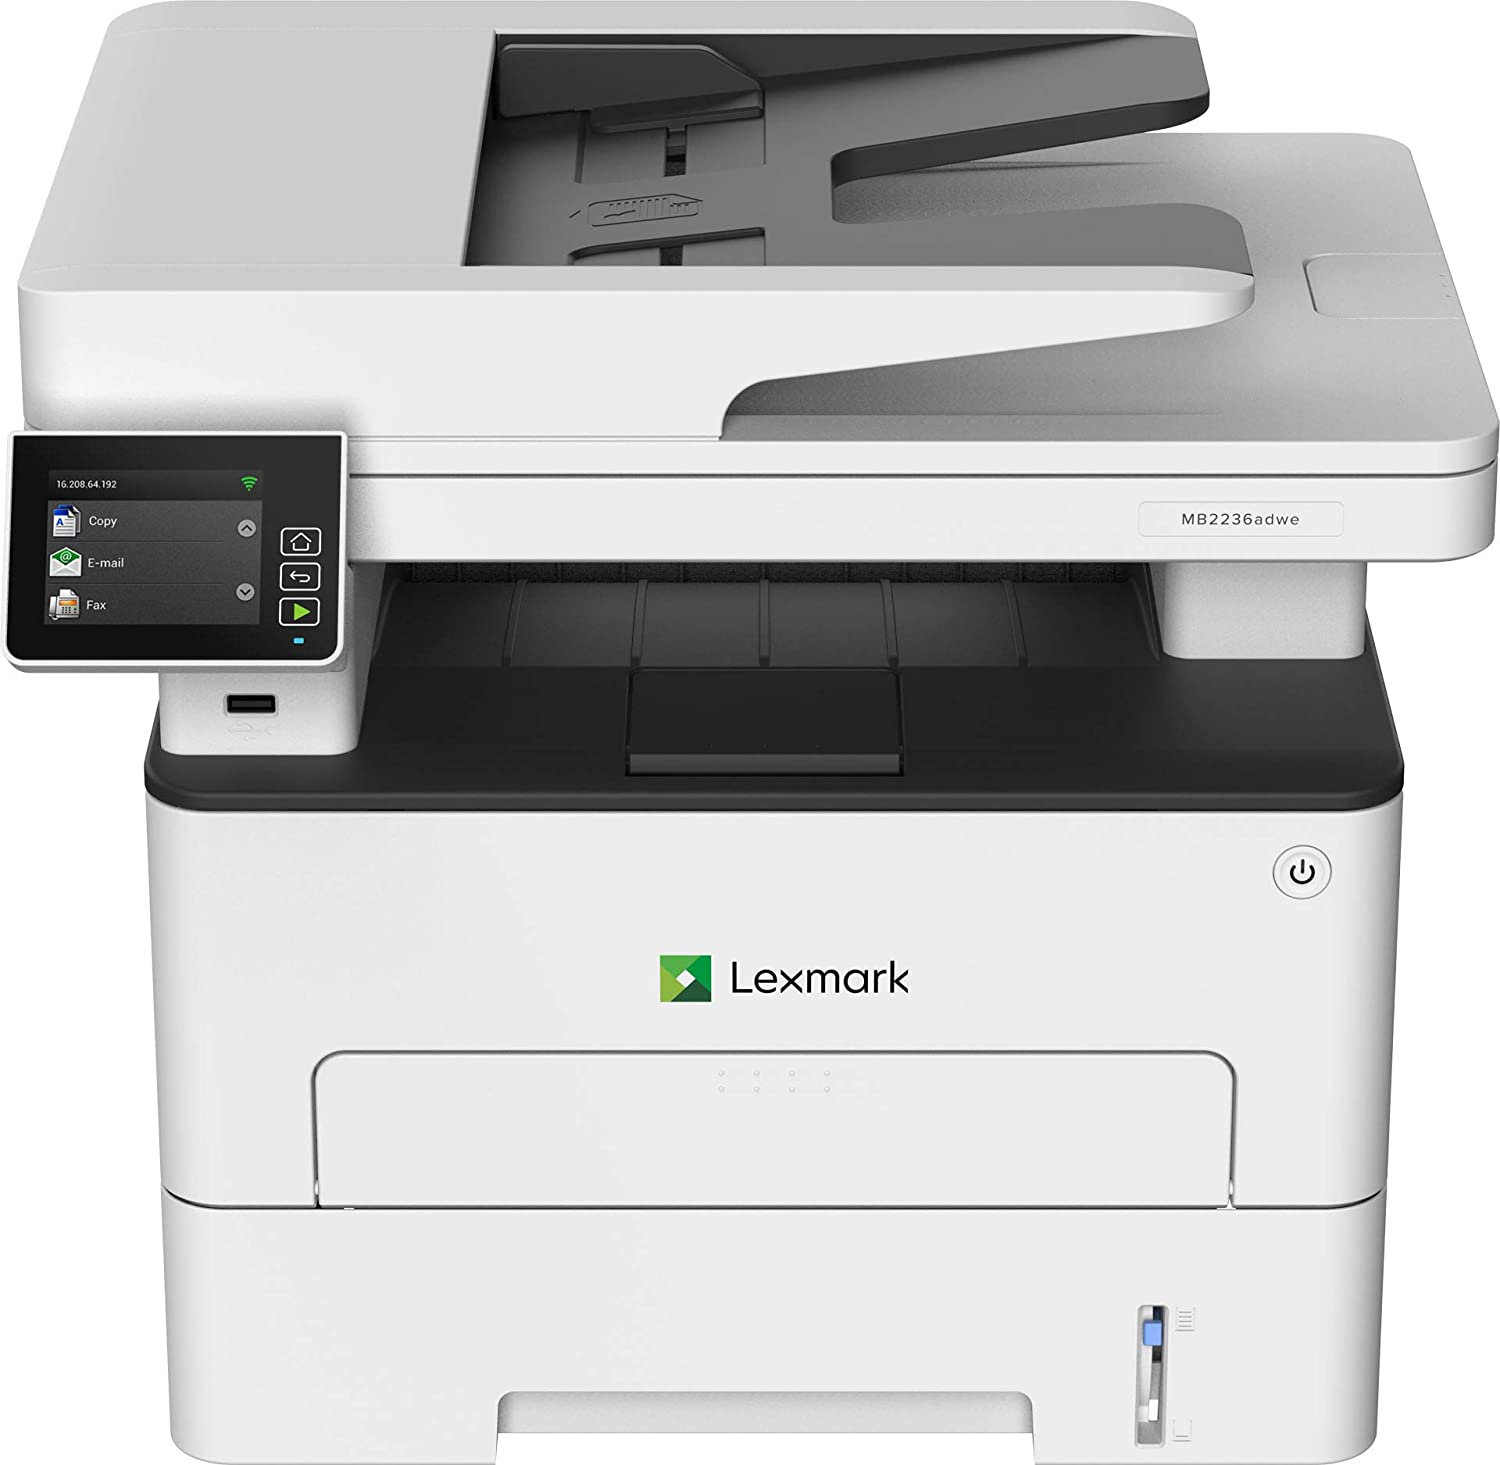 Lexmark MB2236adwe - imprimante laser multifonctions monochrome A4 - recto-verso